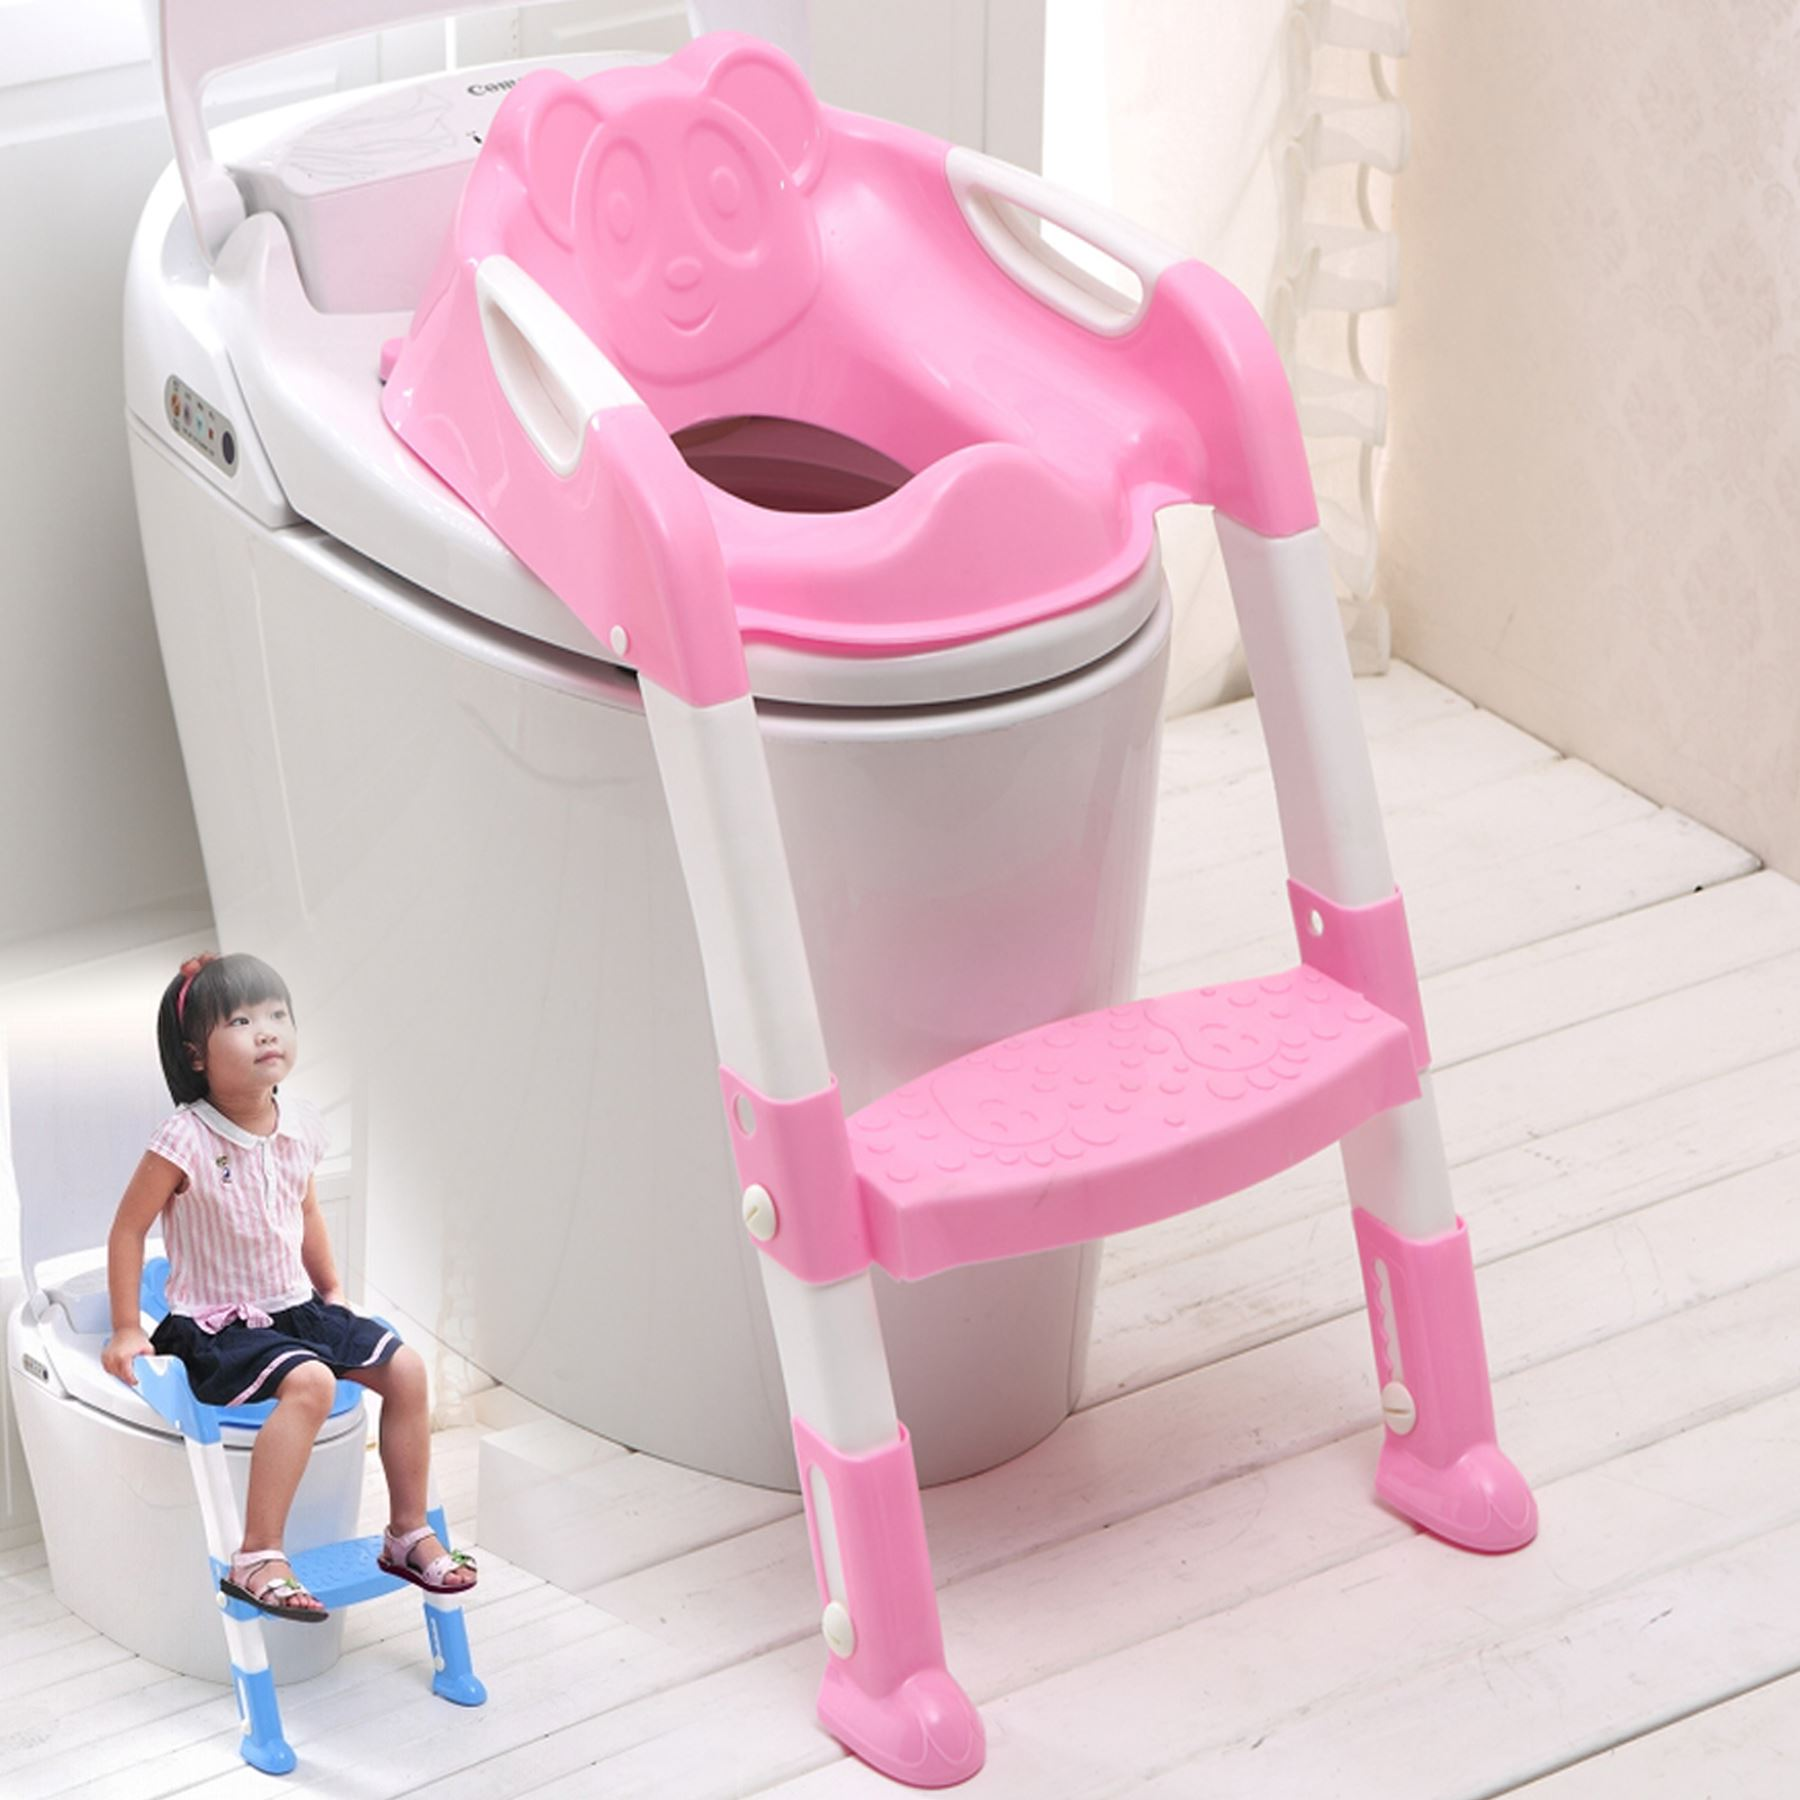 an analysis of toilet training in children Toilet training learning to use the toilet is an important milestone for toddlers it is a big step as they learn to understand their body's signals and start.